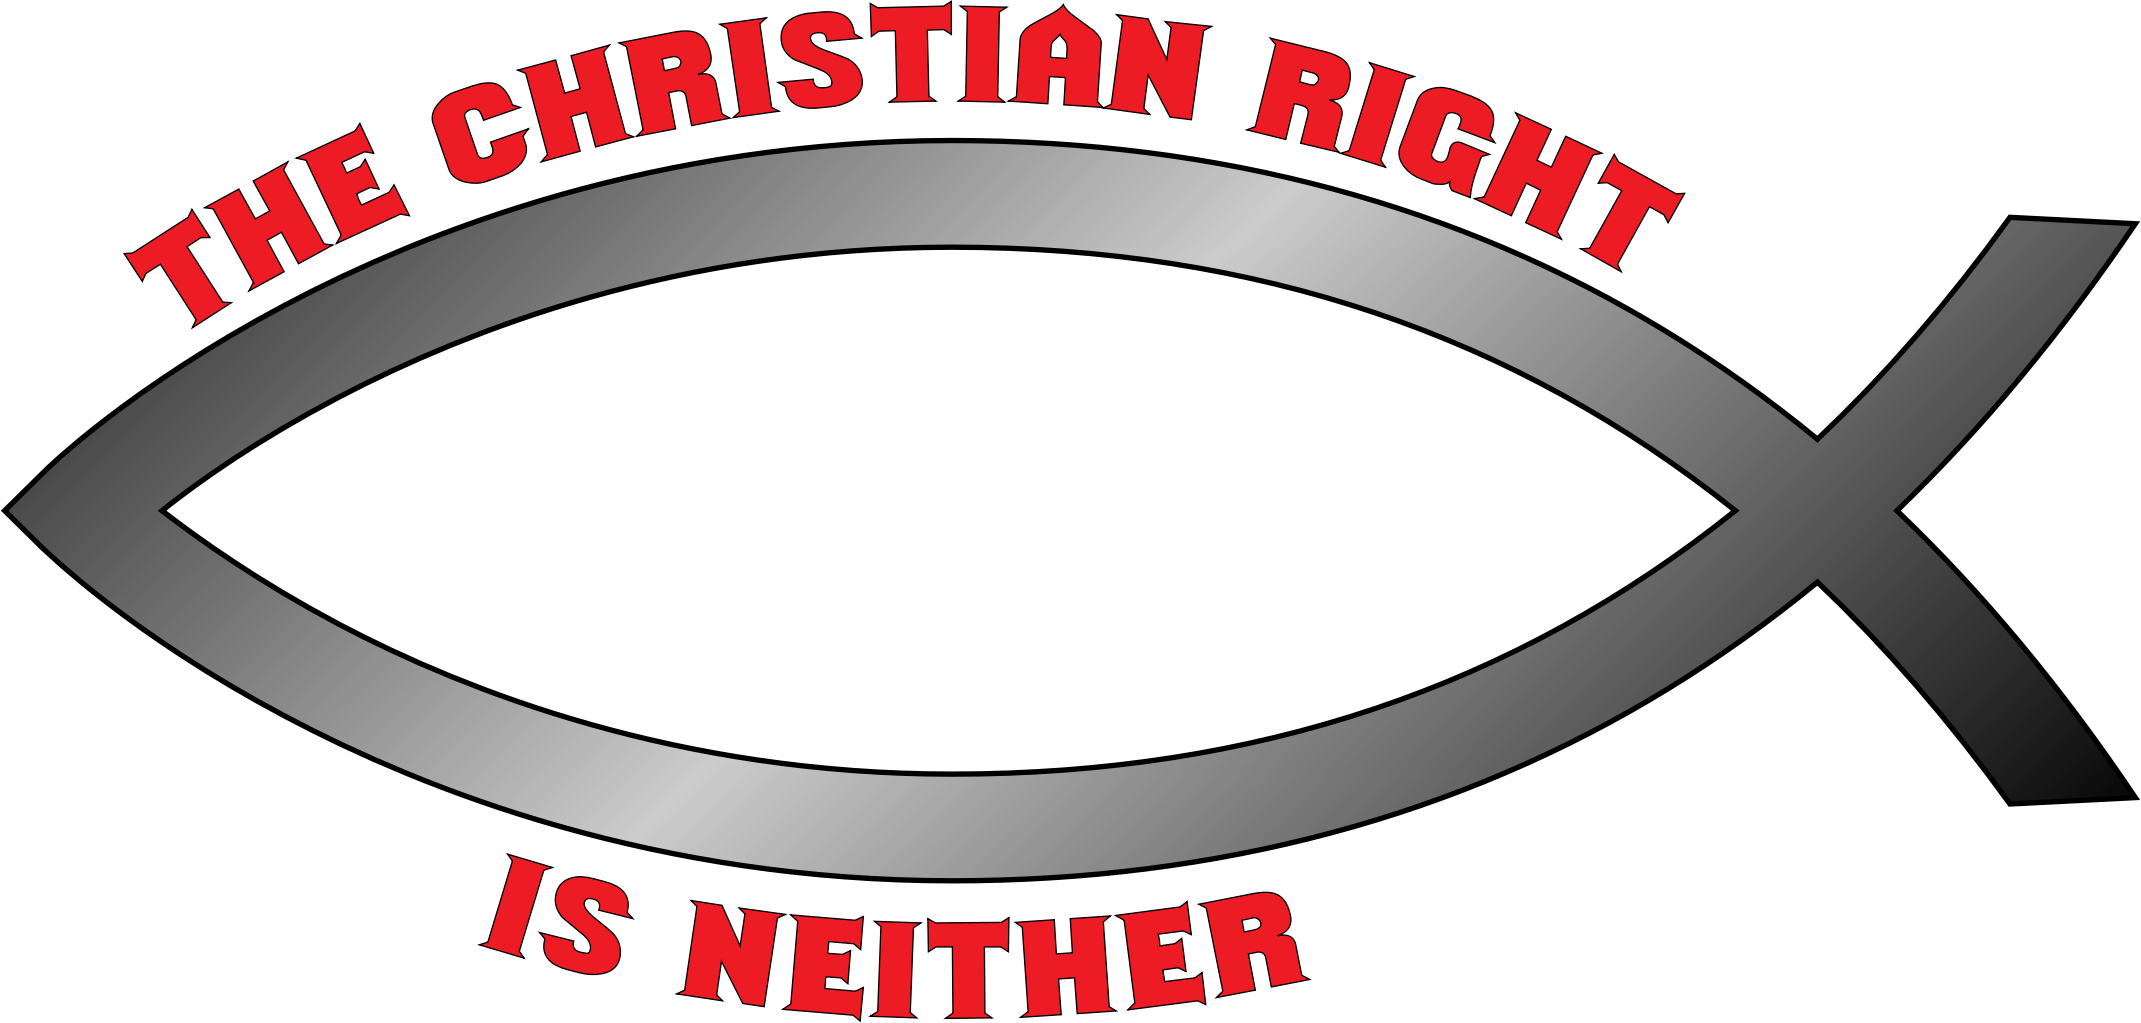 Religious fish clipart vector black and white Clipart - The Christian Right is neither bumper sticker vector black and white